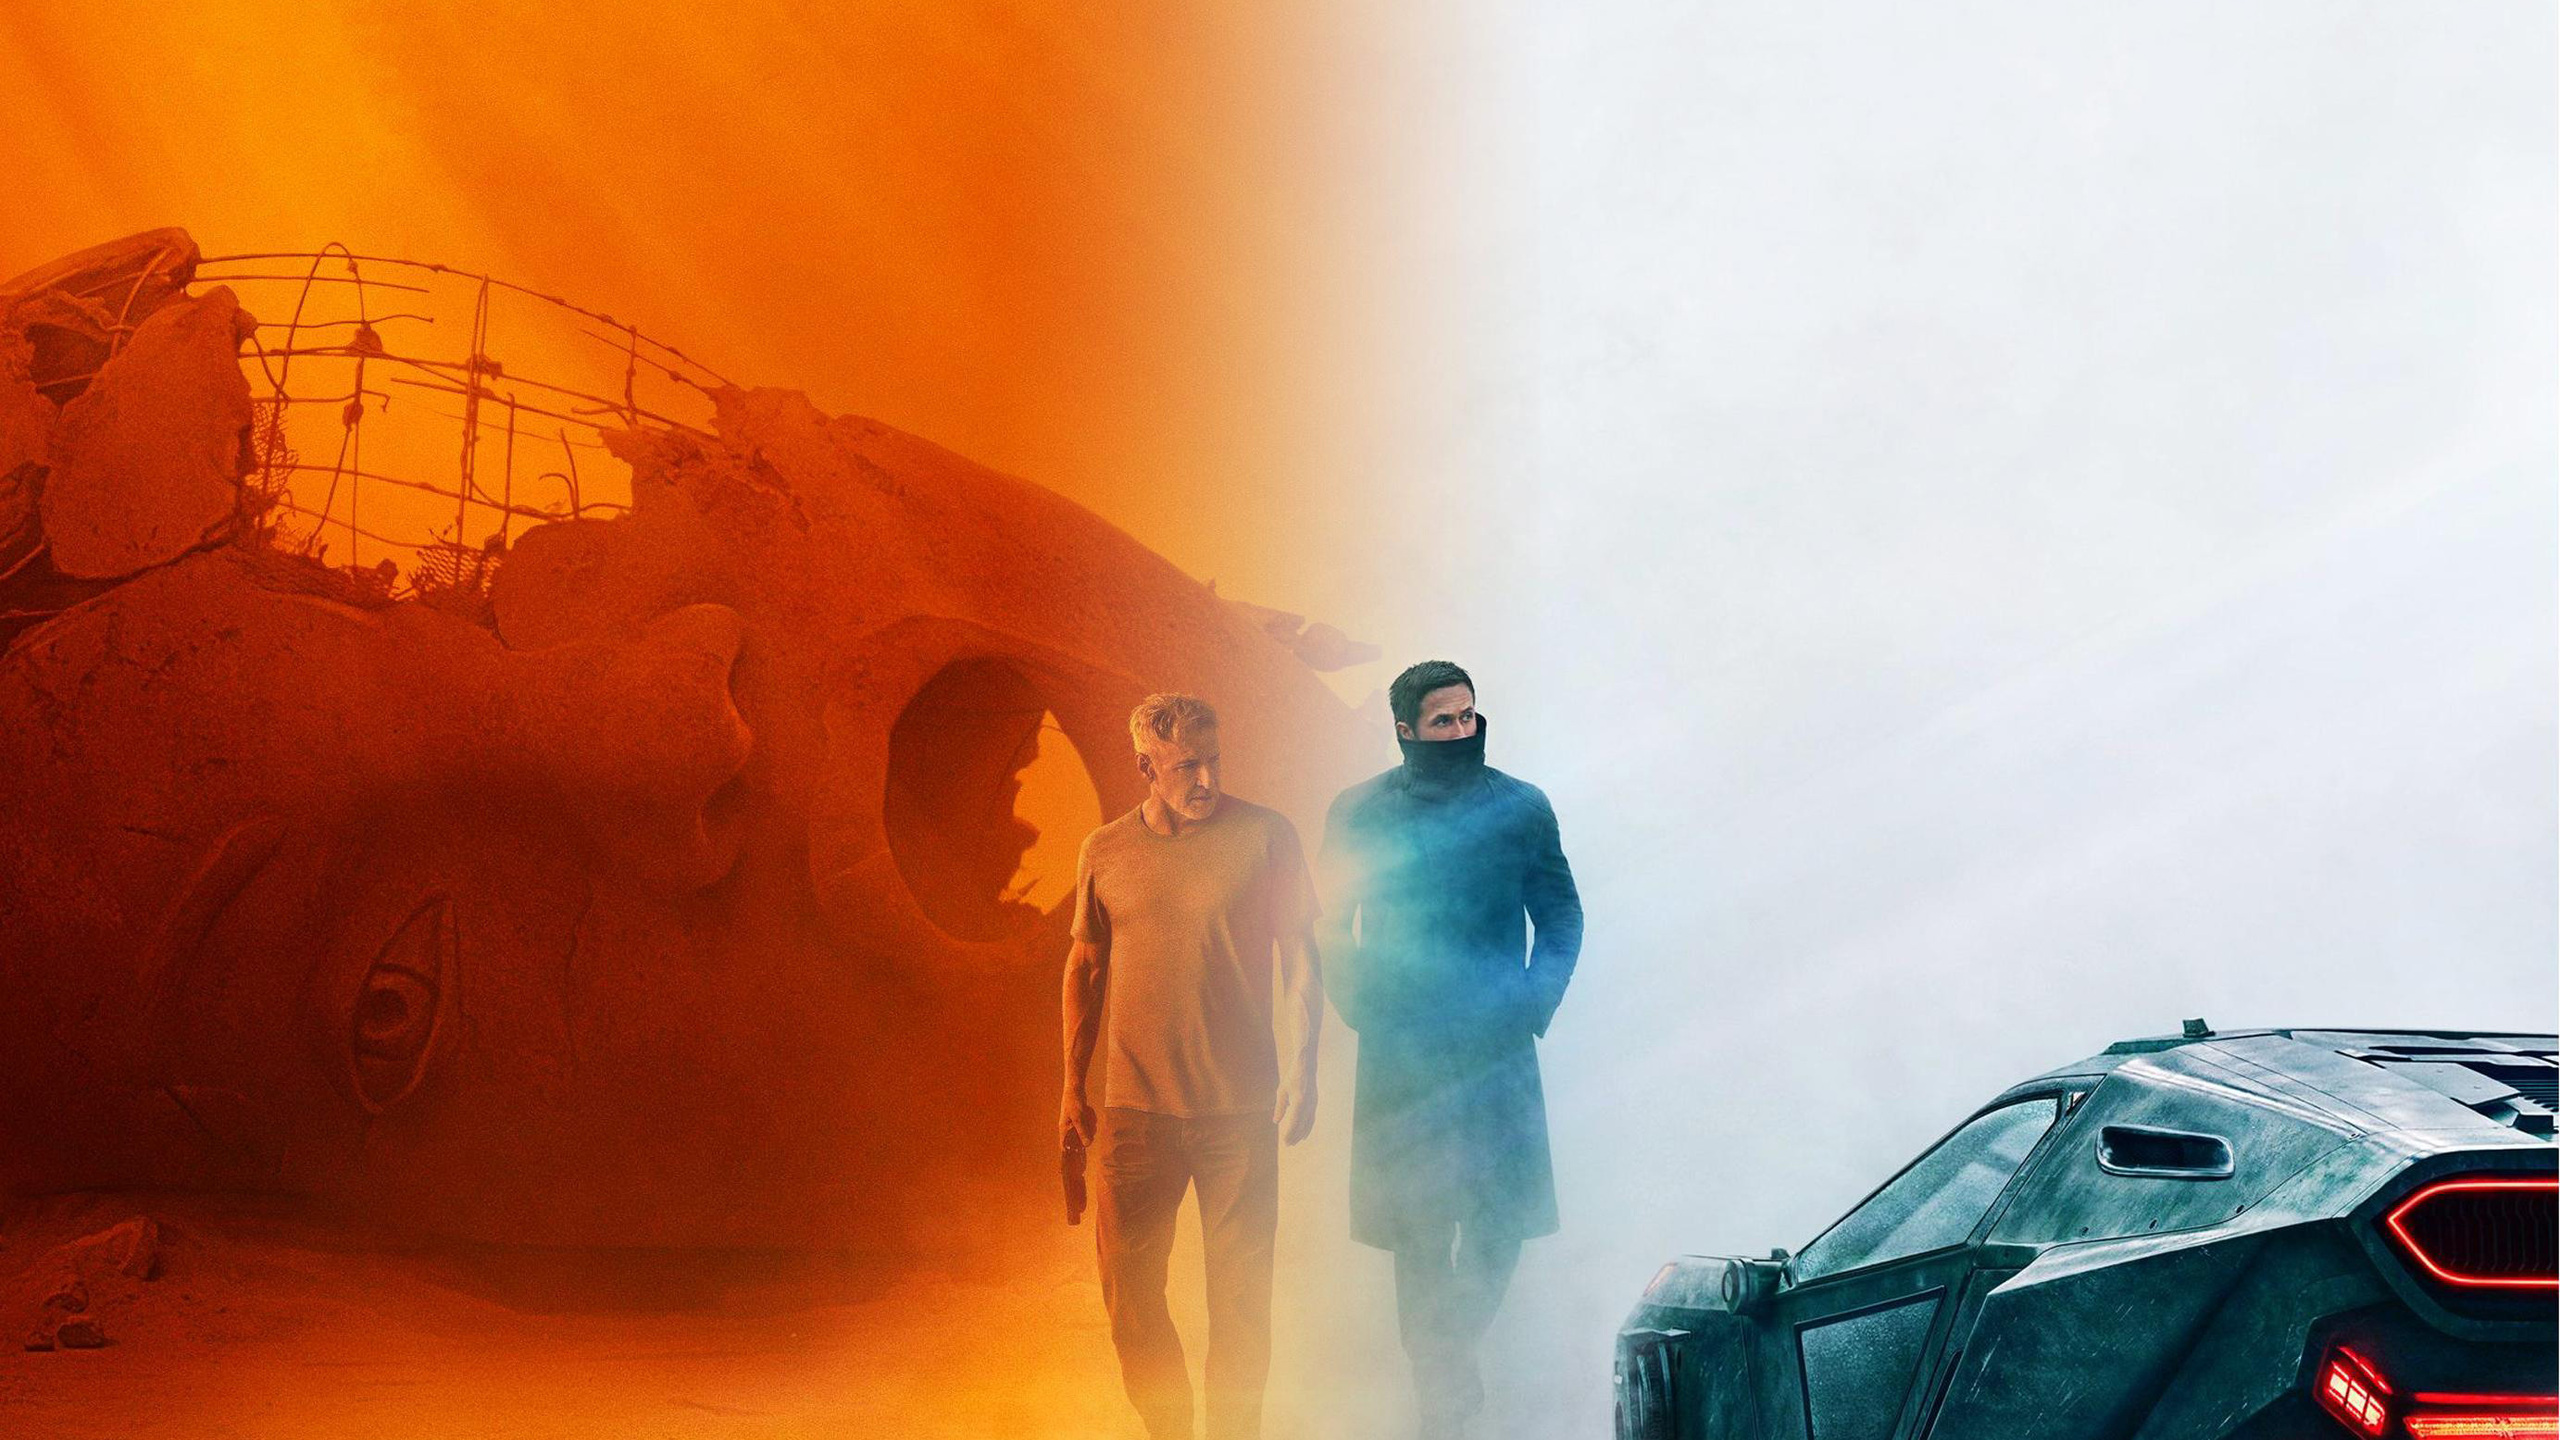 2560x1440 Blade Runner 2049 Movie 1440P Resolution HD 4k